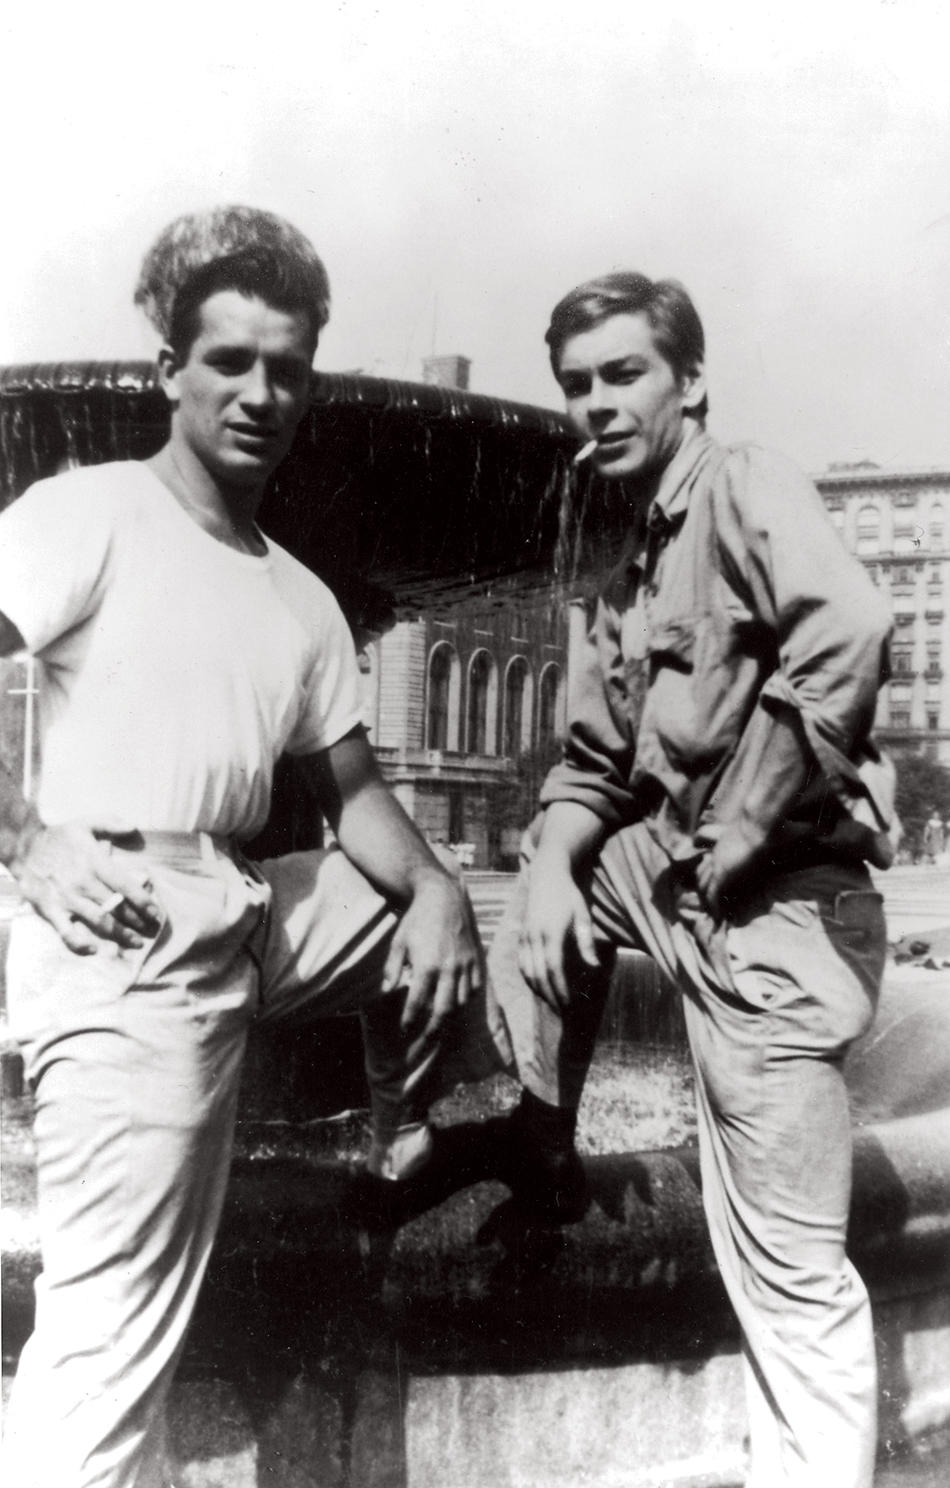 Jack Kerouac and Lucien Carr